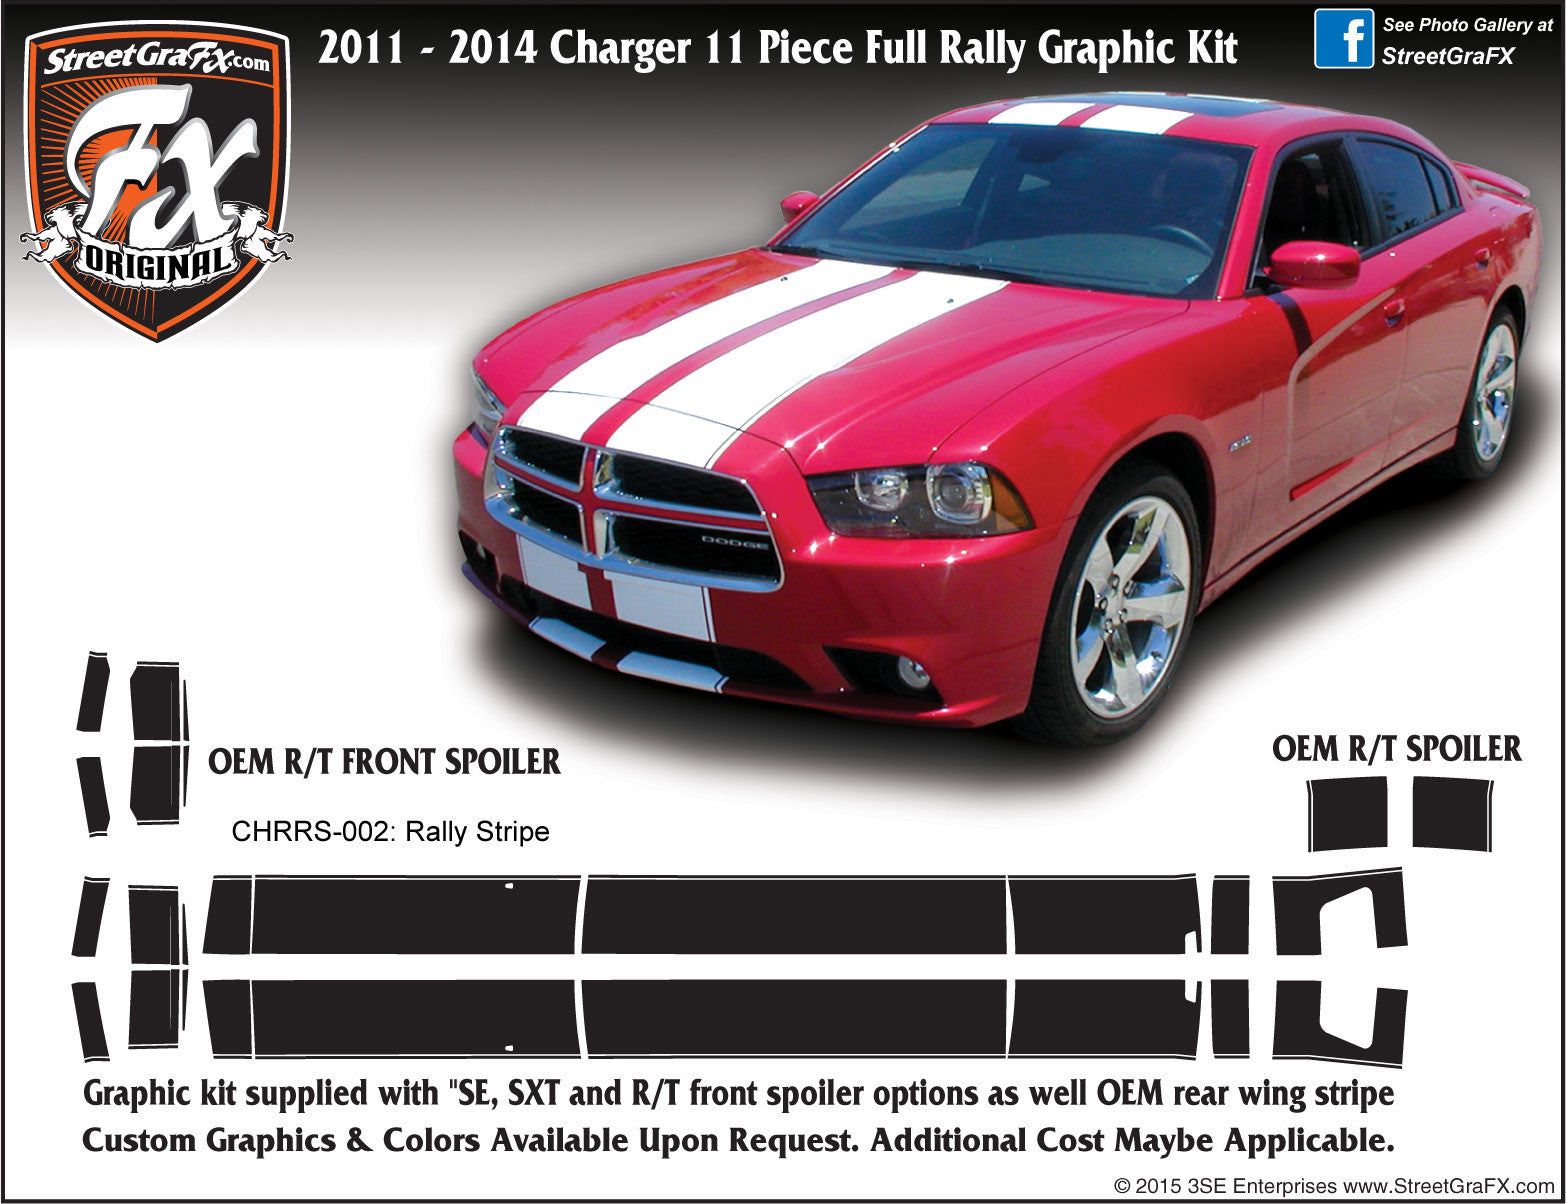 Ram Rt For Sale >> Dodge Charger Stripes, Racing Stripes & R/T Graphic kit ...